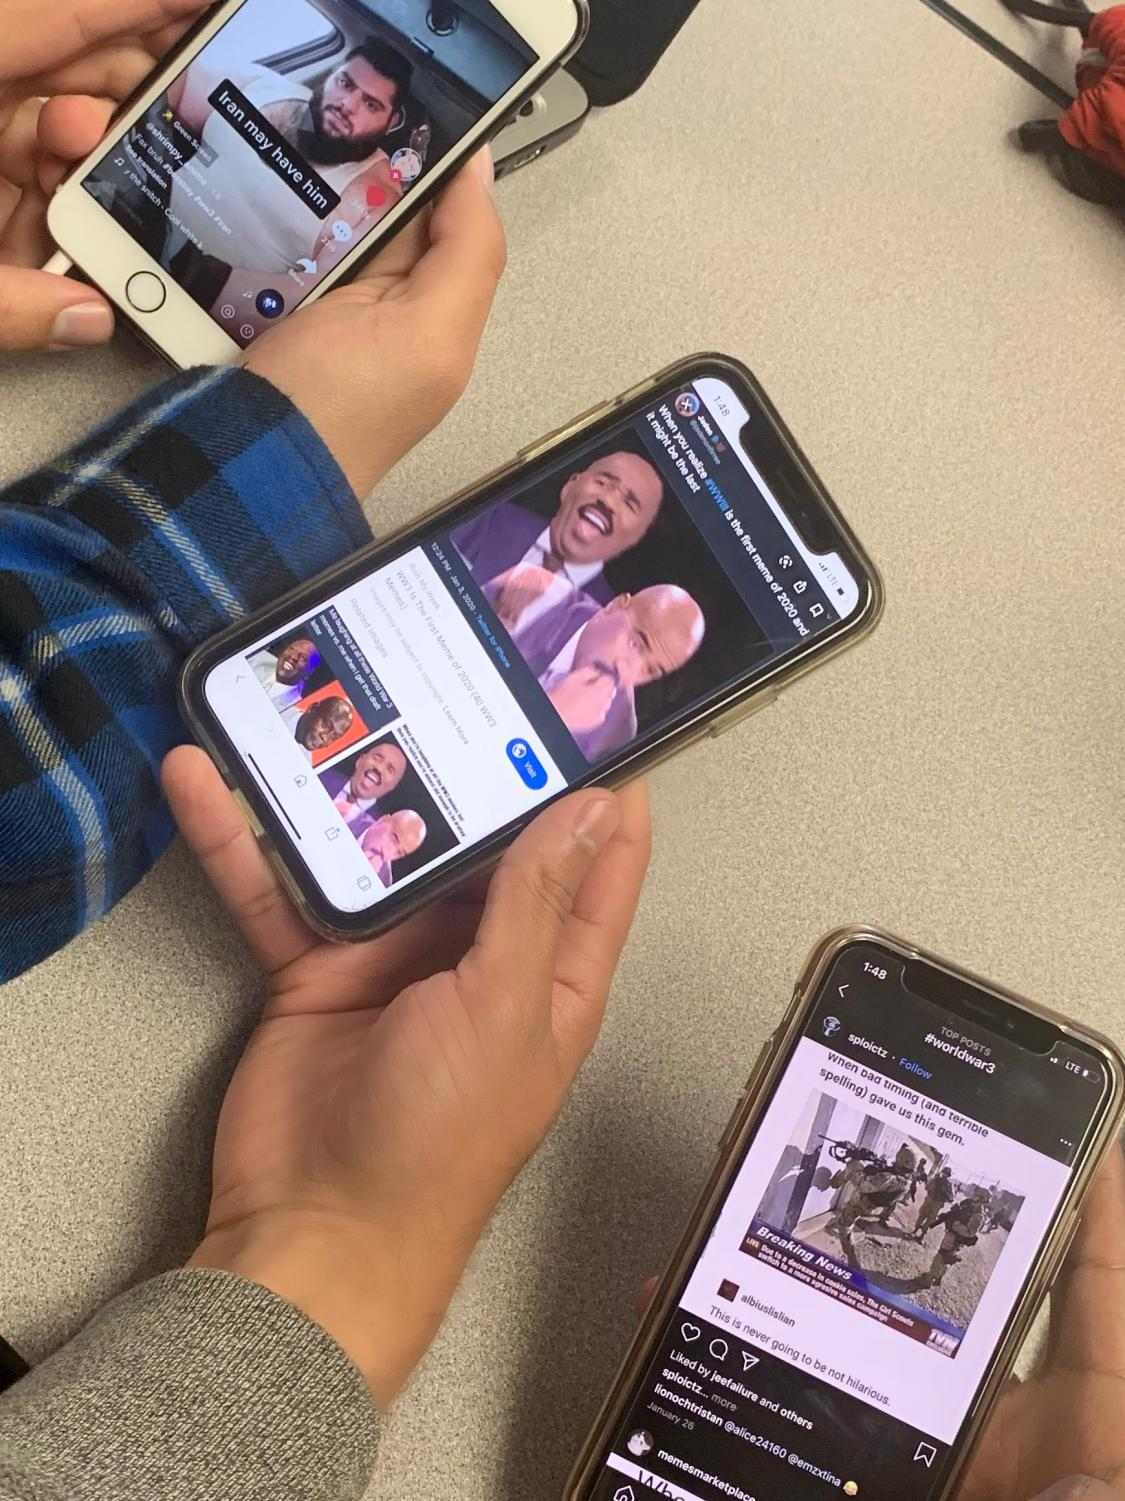 MCHS students gathered to share their funniest memes regarding WWIII